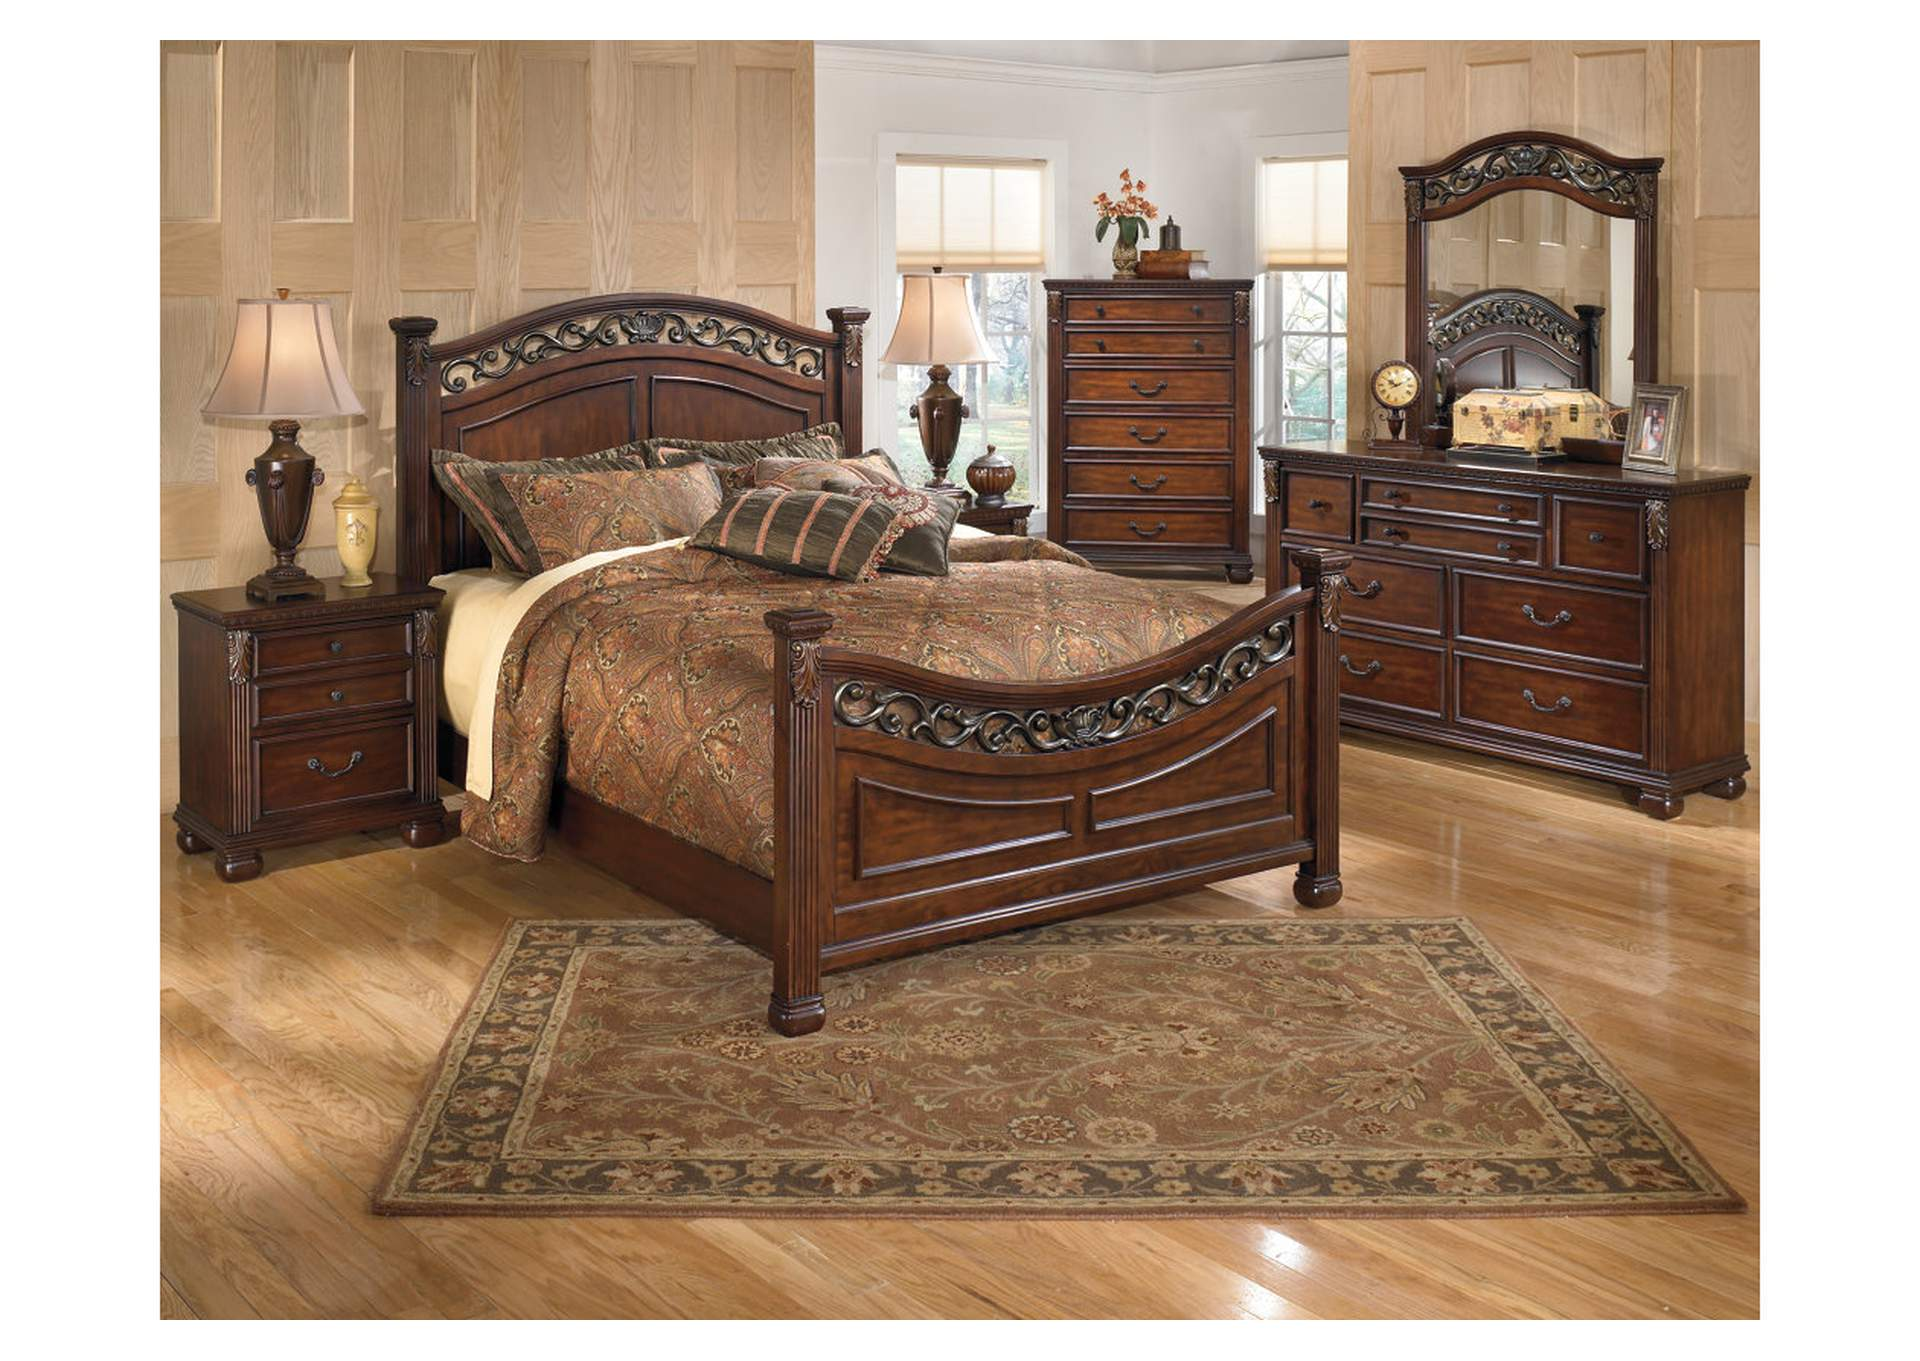 Leahlyn King Panel Bed w/Dresser, Mirror, Drawer Chest & Nightstand,Signature Design By Ashley